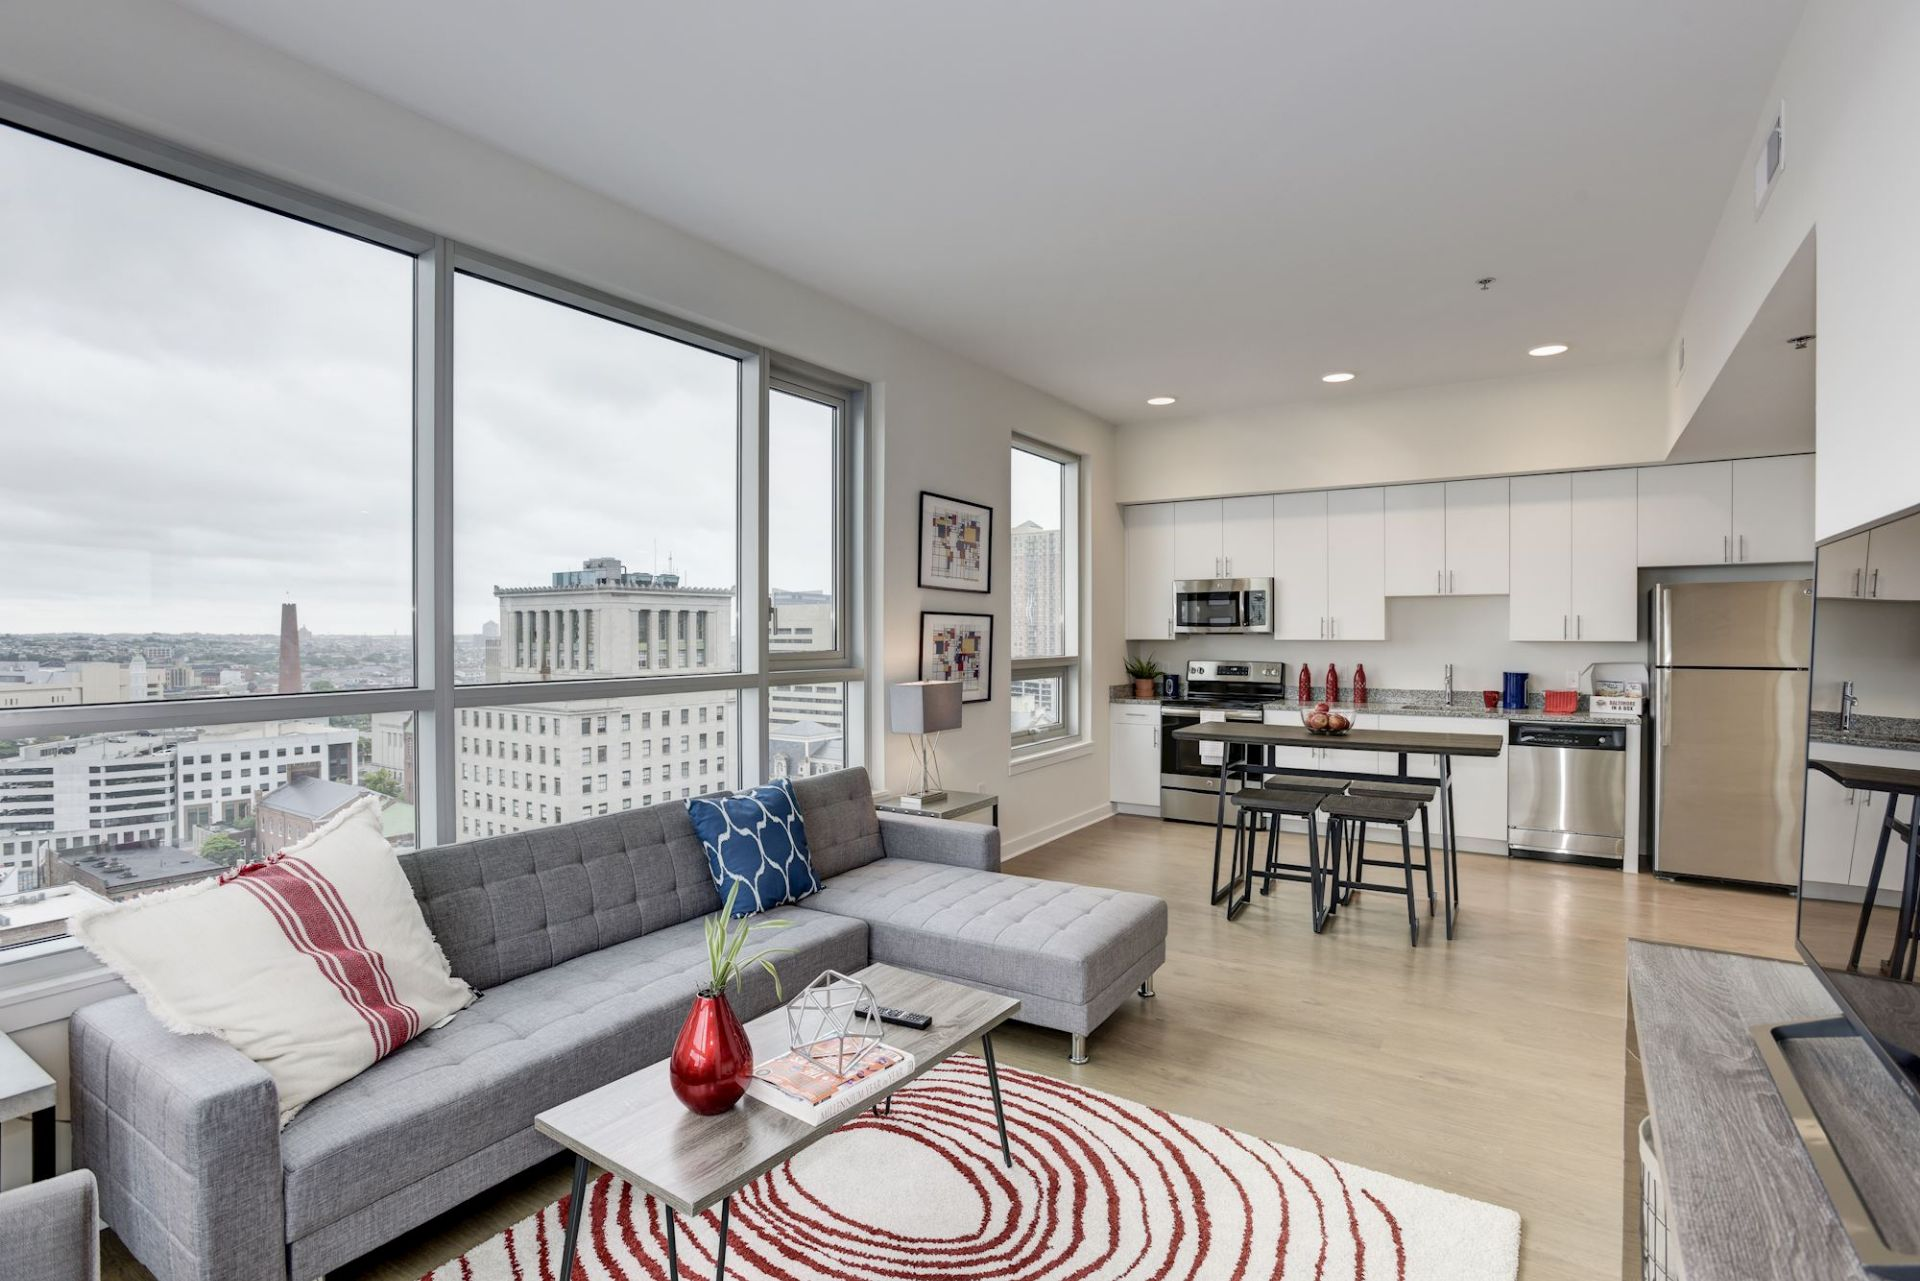 Apartment living and kitchen area with stainless steel appliances